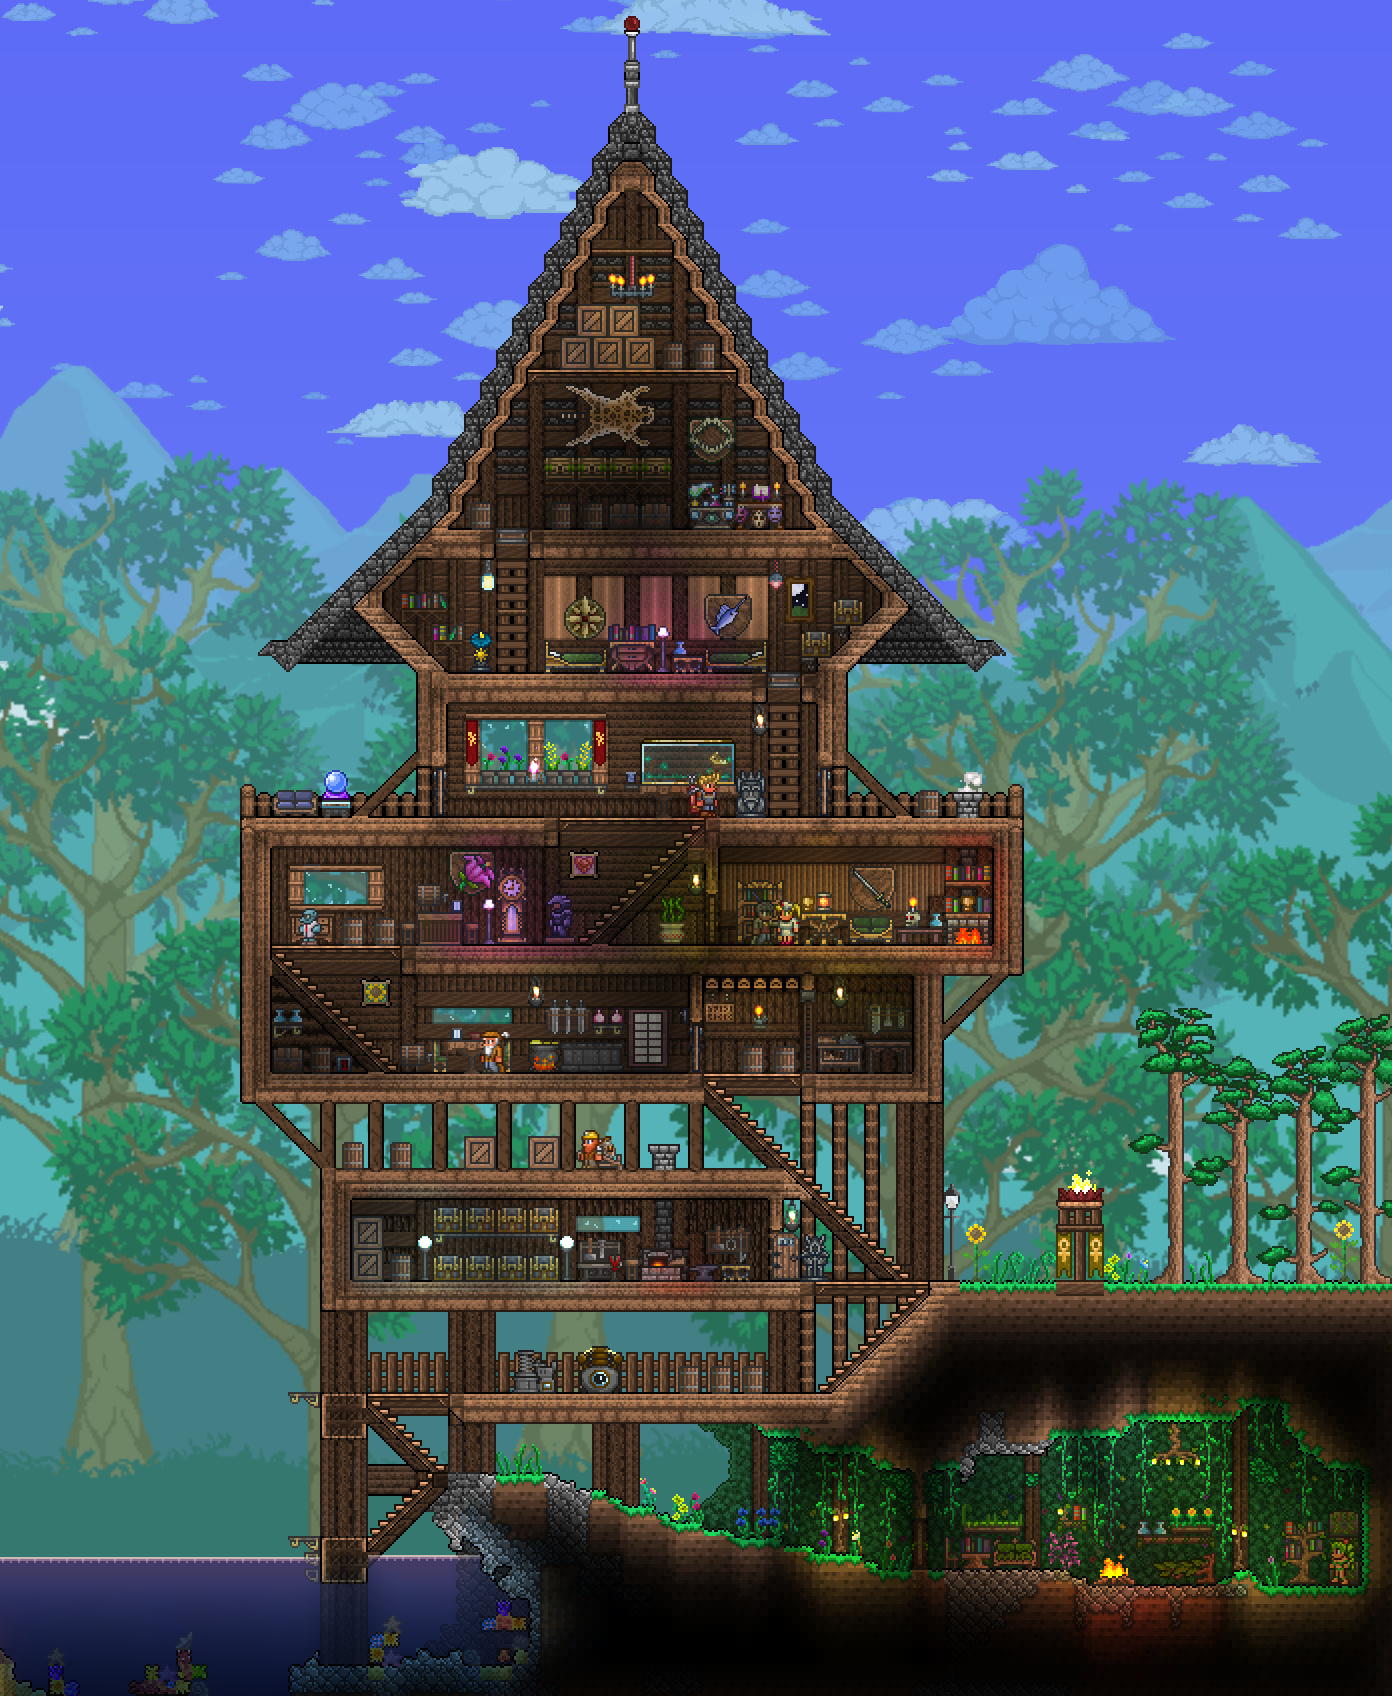 Terrarium Terraria House Design: Terraria, Gaming And